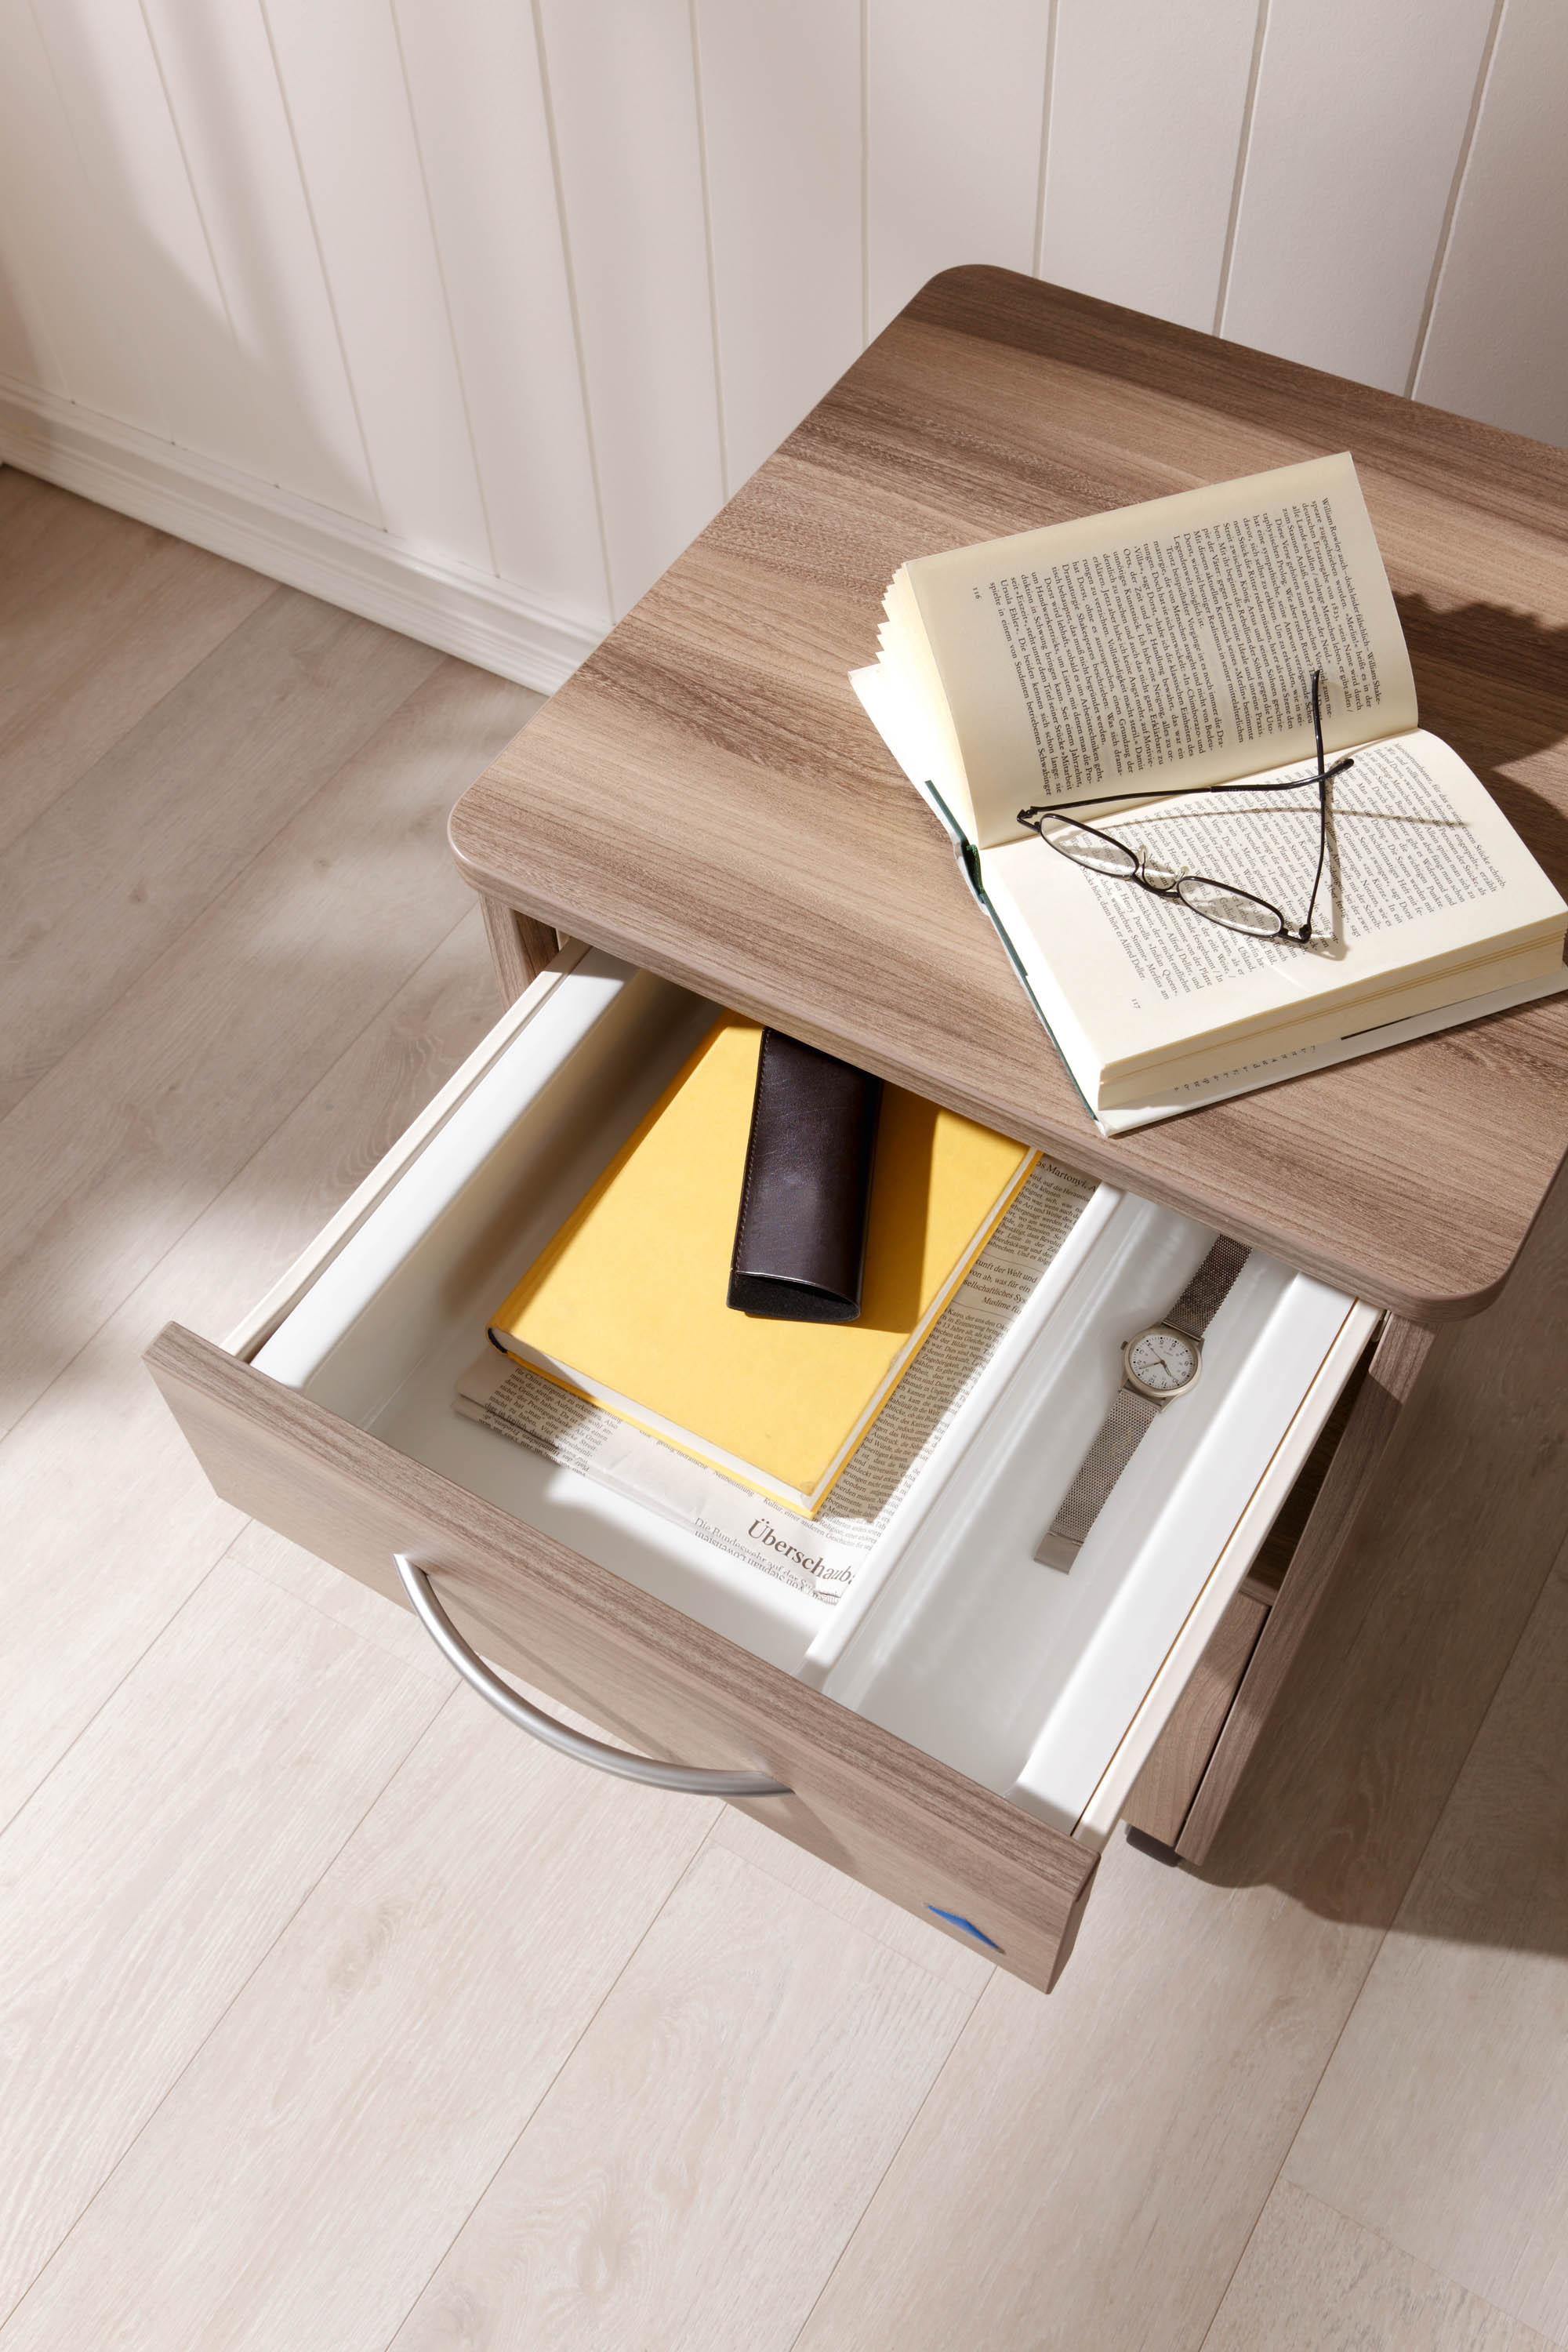 Roller-guided drawers on the Combino bedside cabinet